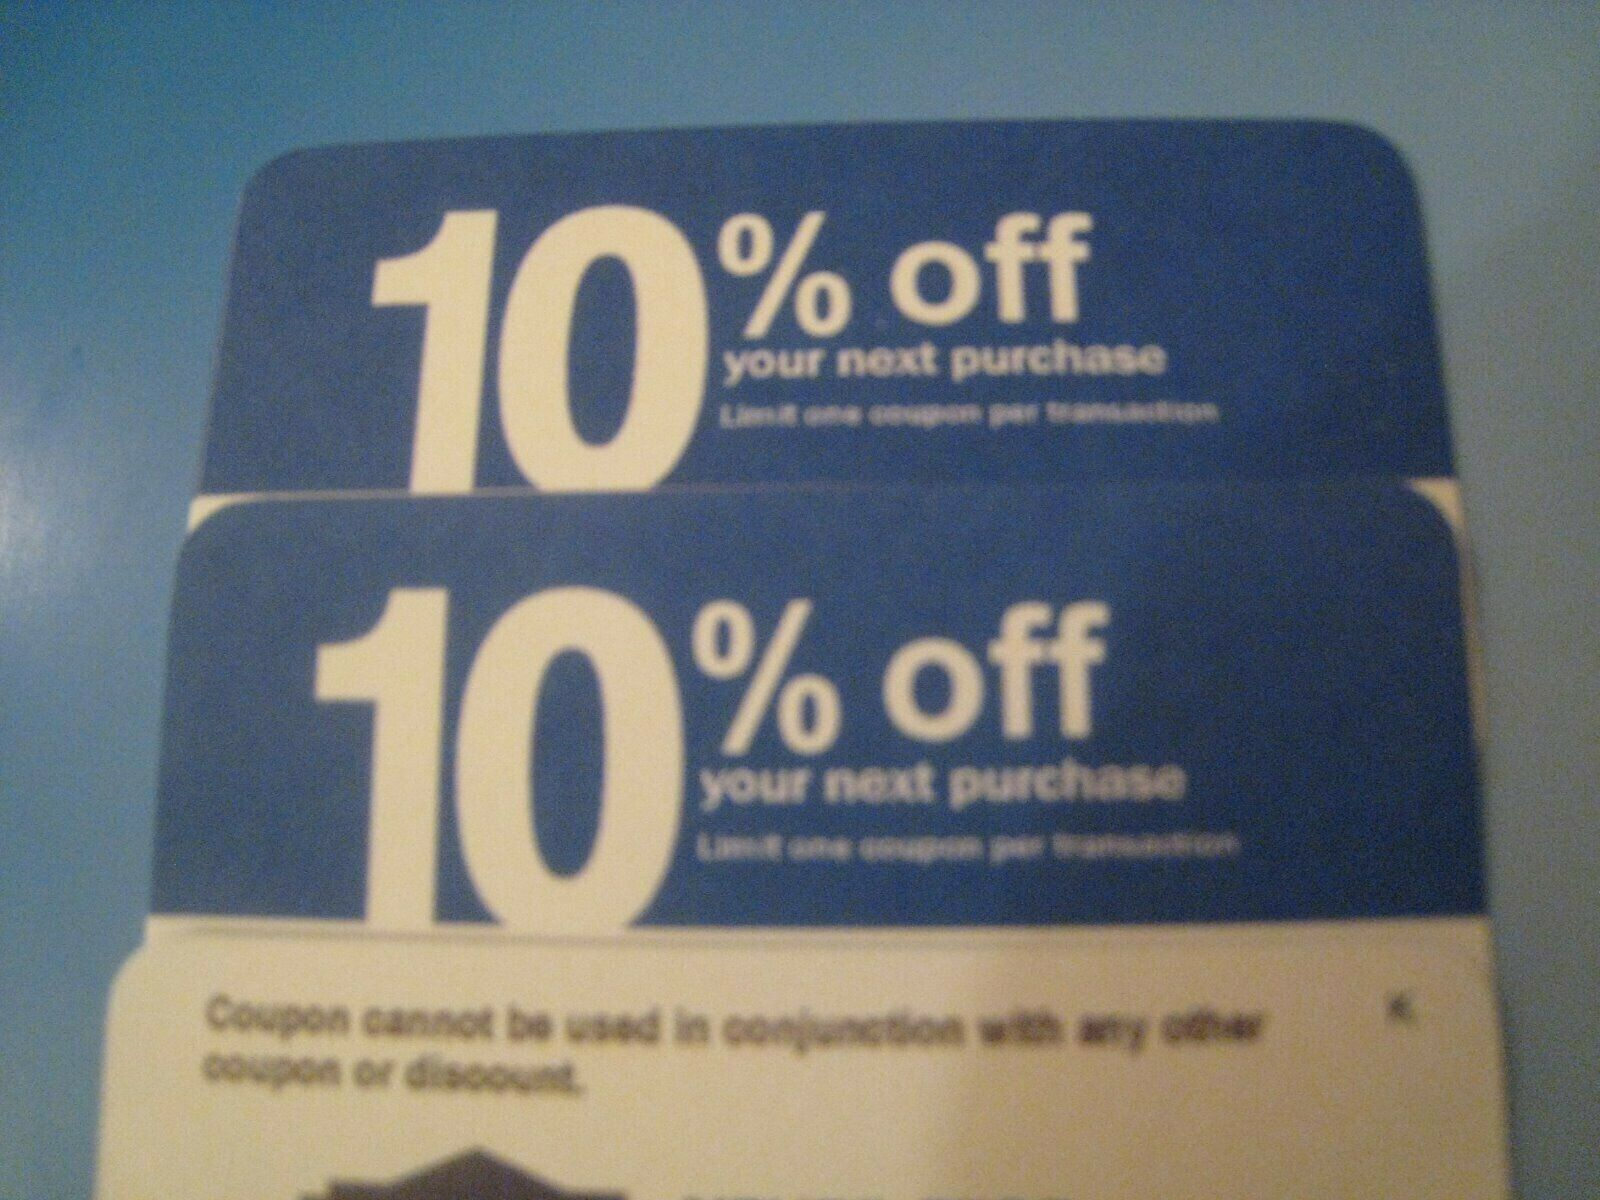 4x Home Depot 10 Off Exp 10 15 2020 Lowes Coupon Only Works Competitor Home Depot In 2020 Home Depot Coupons Lowes Coupon Home Depot